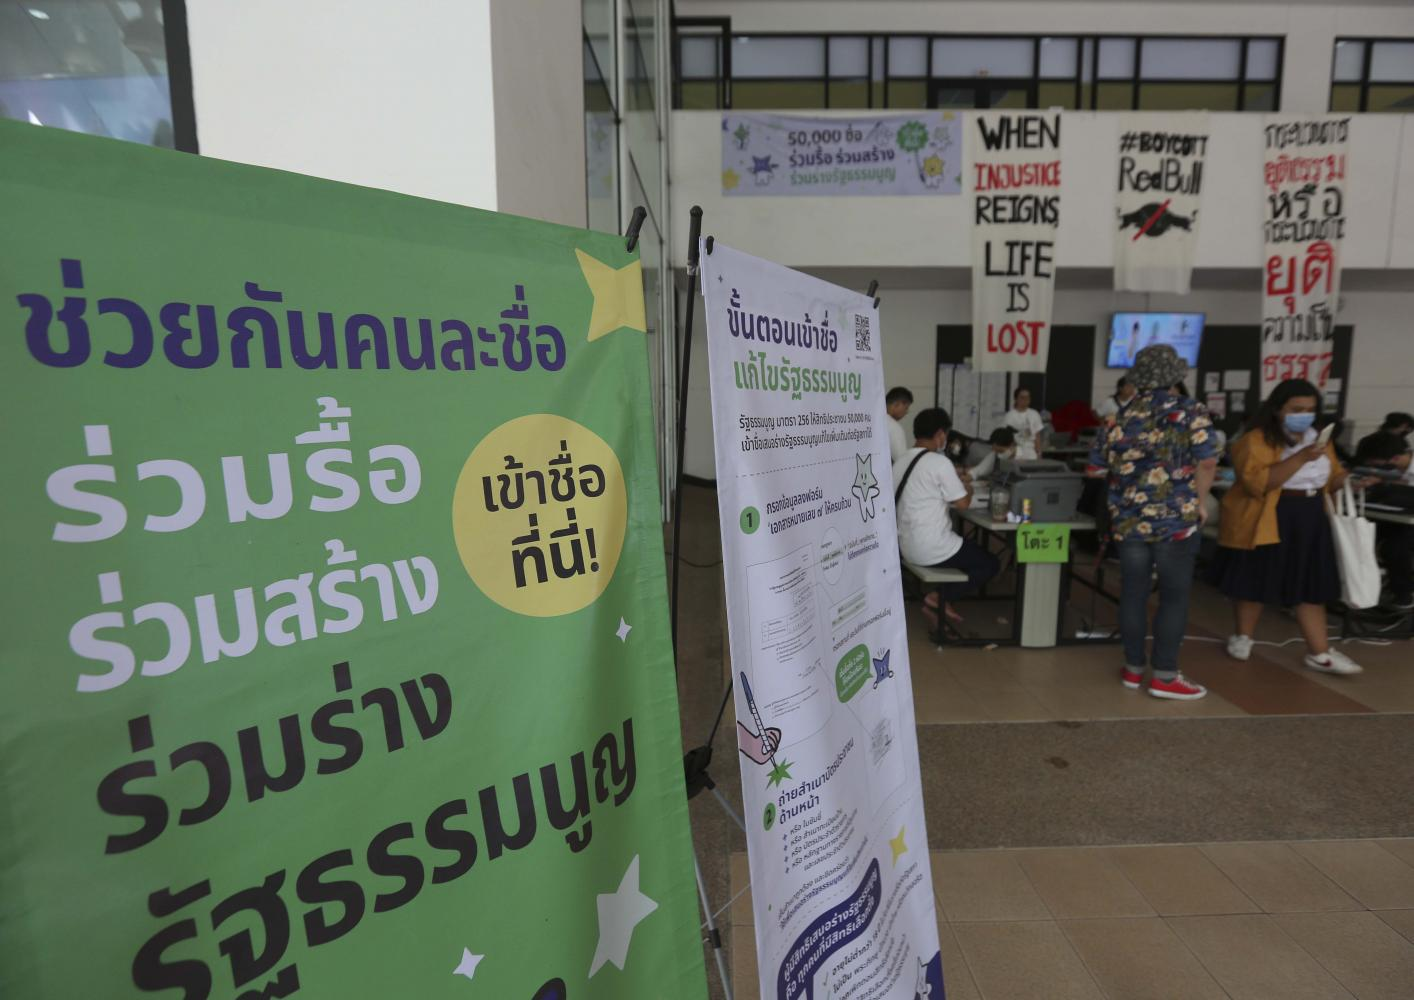 Pro-democracy students put up a sign encouraging people to sign up for a charter amendment campaign. (Photo by Pattarapong Chatpattarasill)